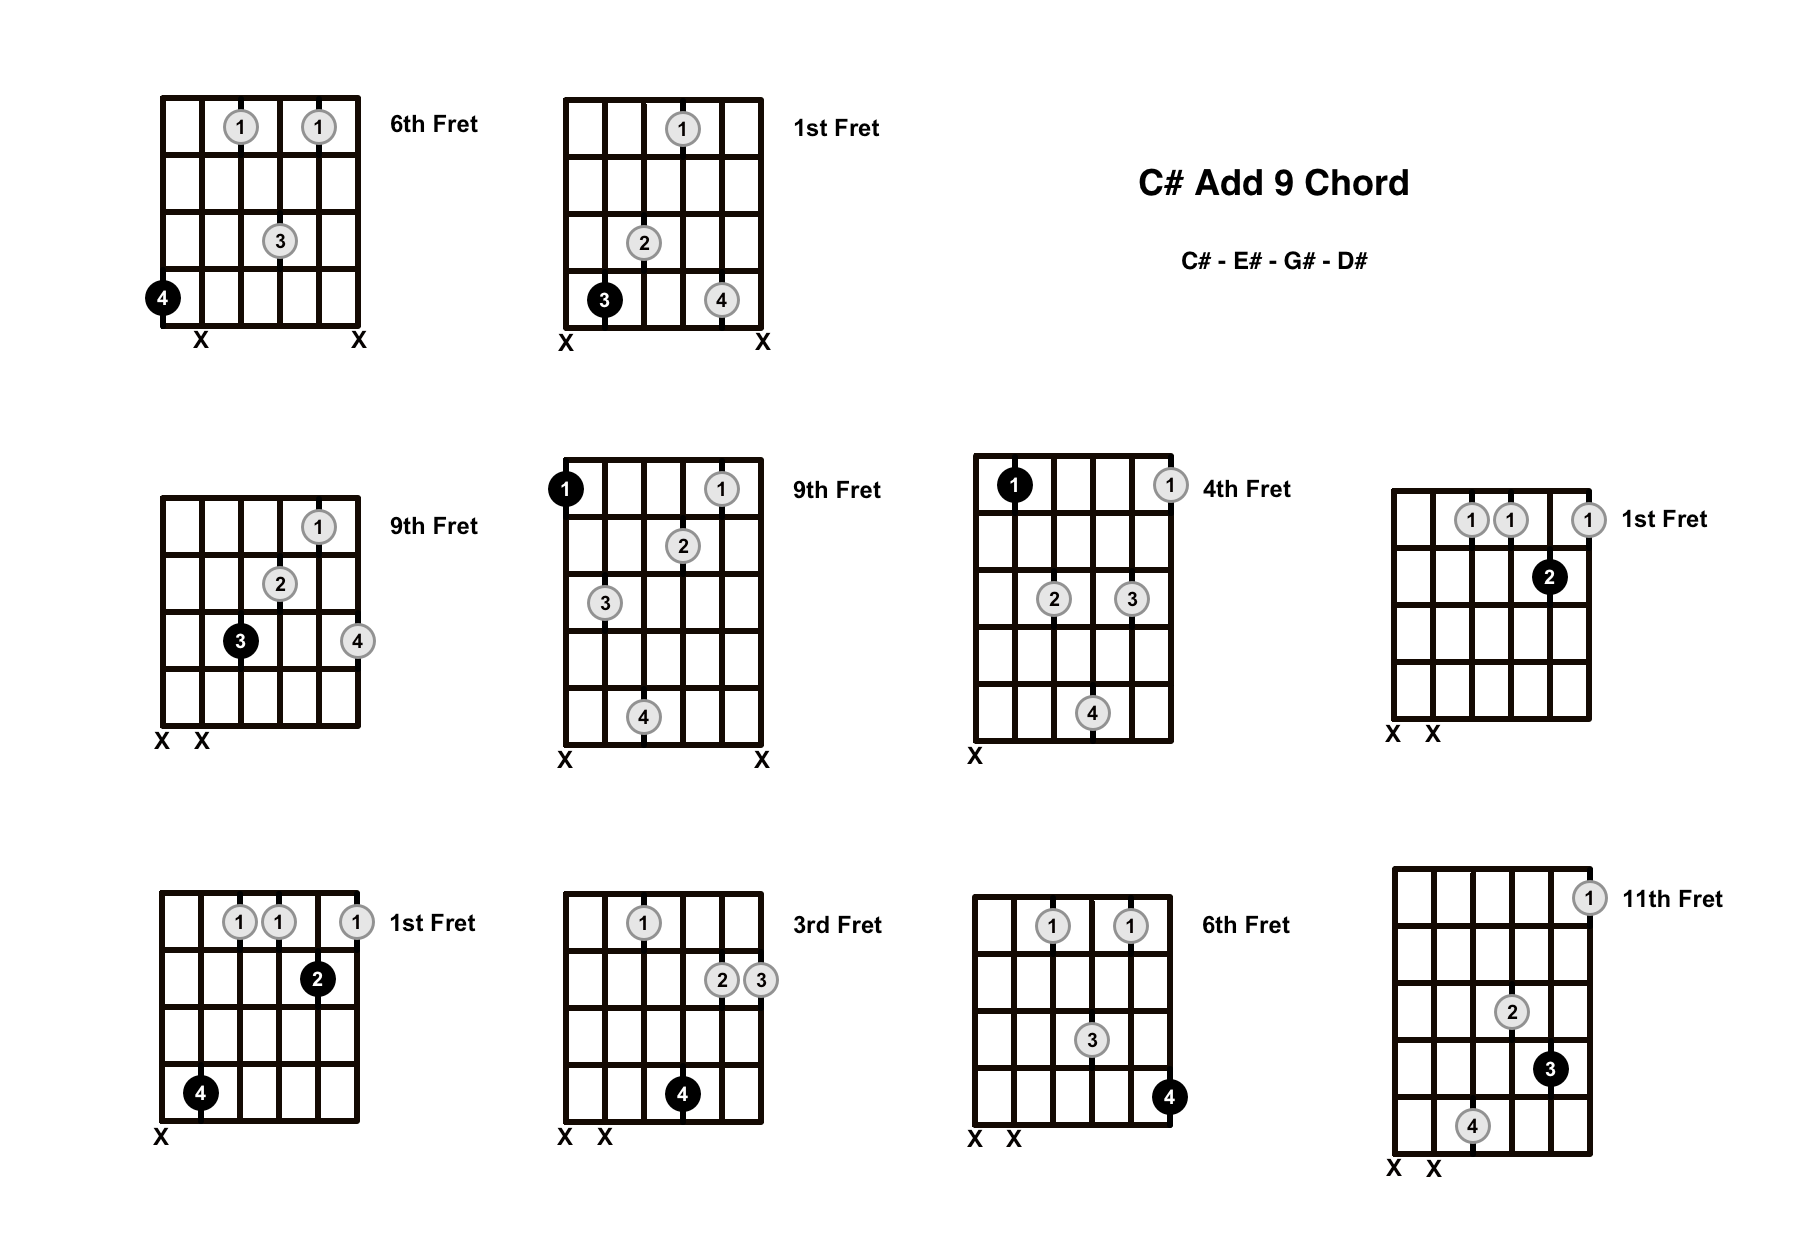 C# Add 9 Chord On The Guitar (C Sharp Add 9/C Sharp Add 2) – Diagrams, Finger Positions and Theory